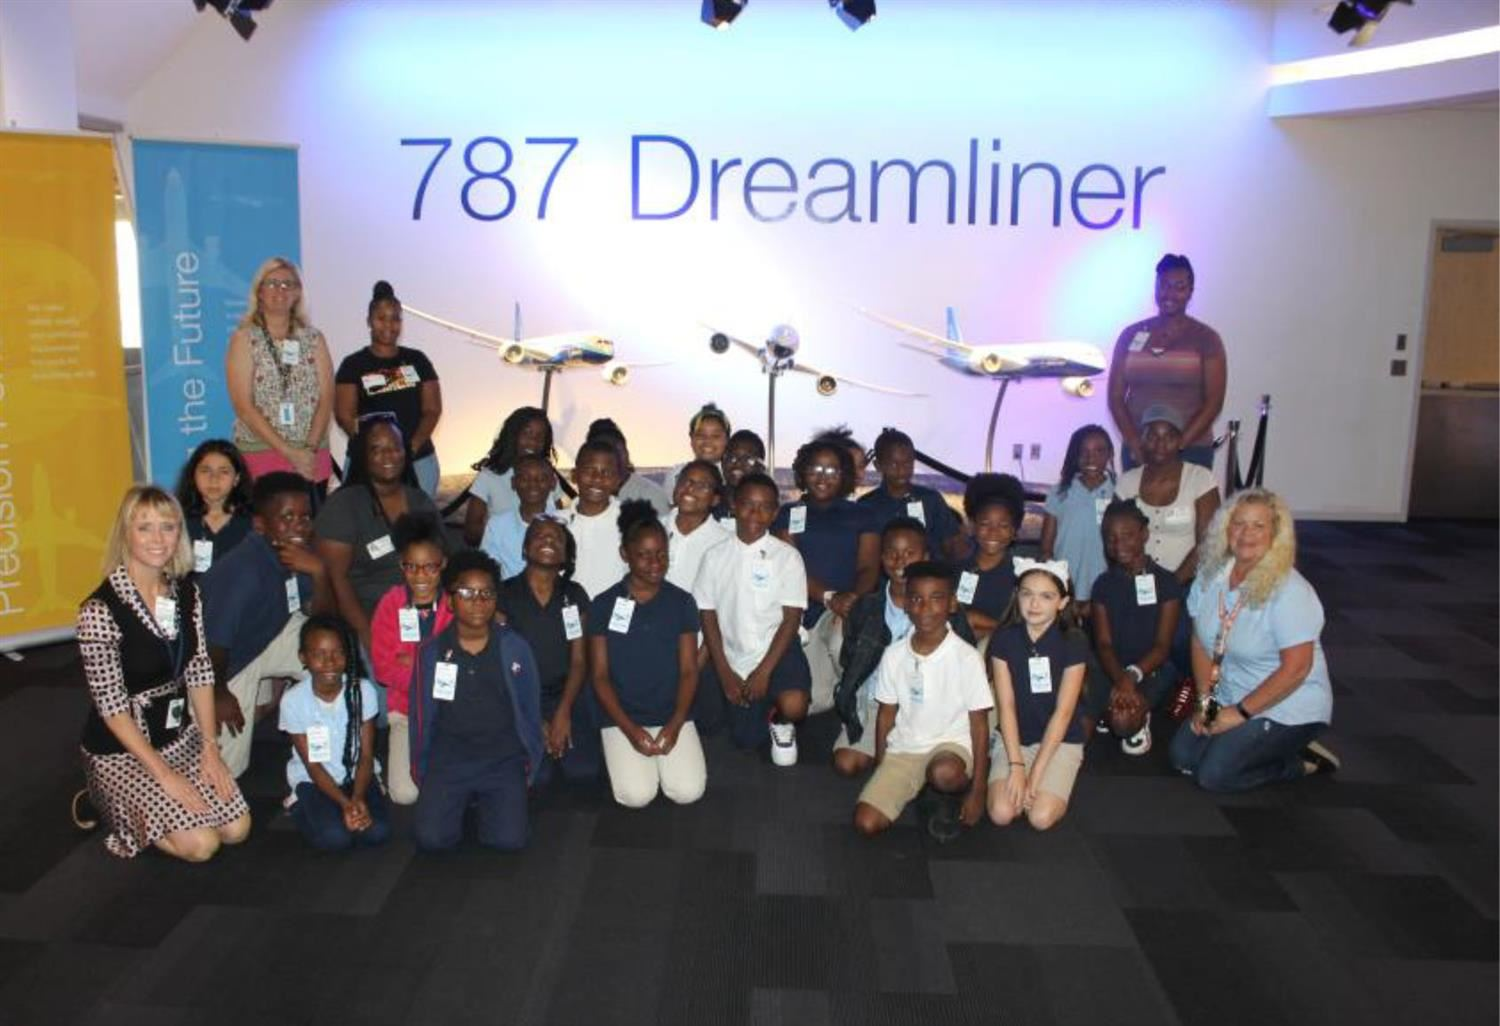 Frierson students participate in Boeing's Dream Learner Program